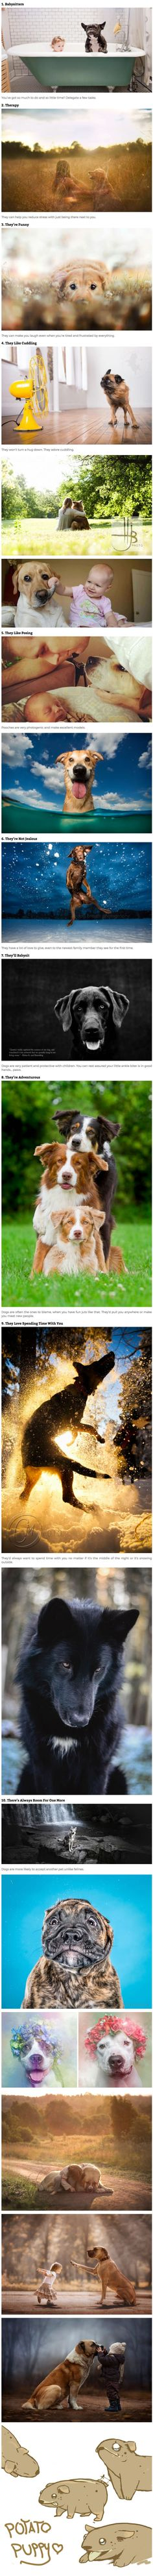 Dogs: More than just cuteness overload